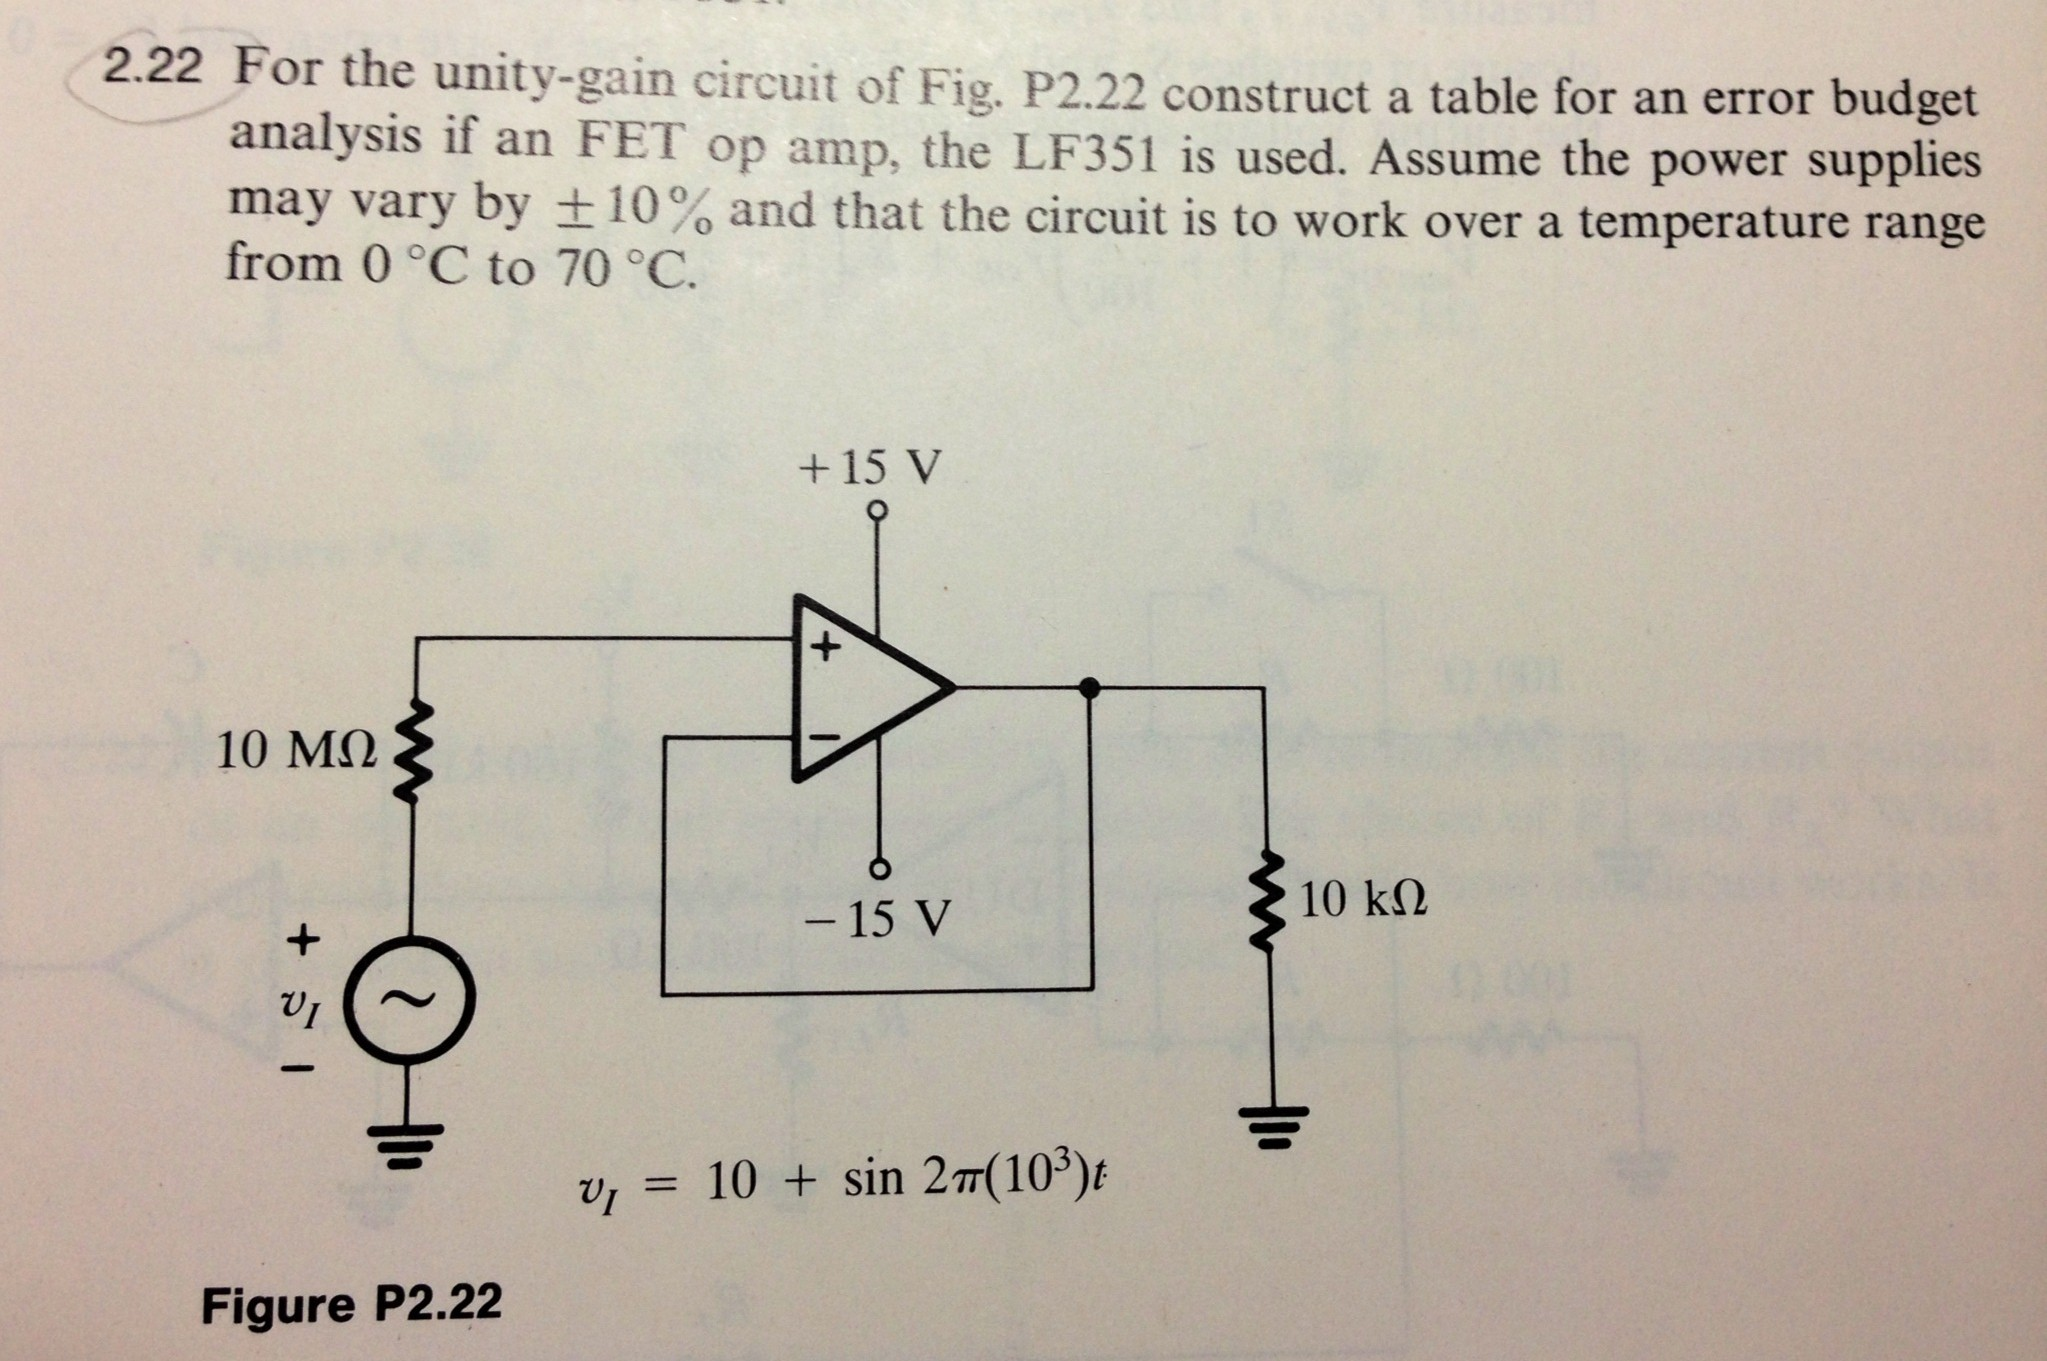 For the unity-gain circuit of Fig. P2. 22 construc